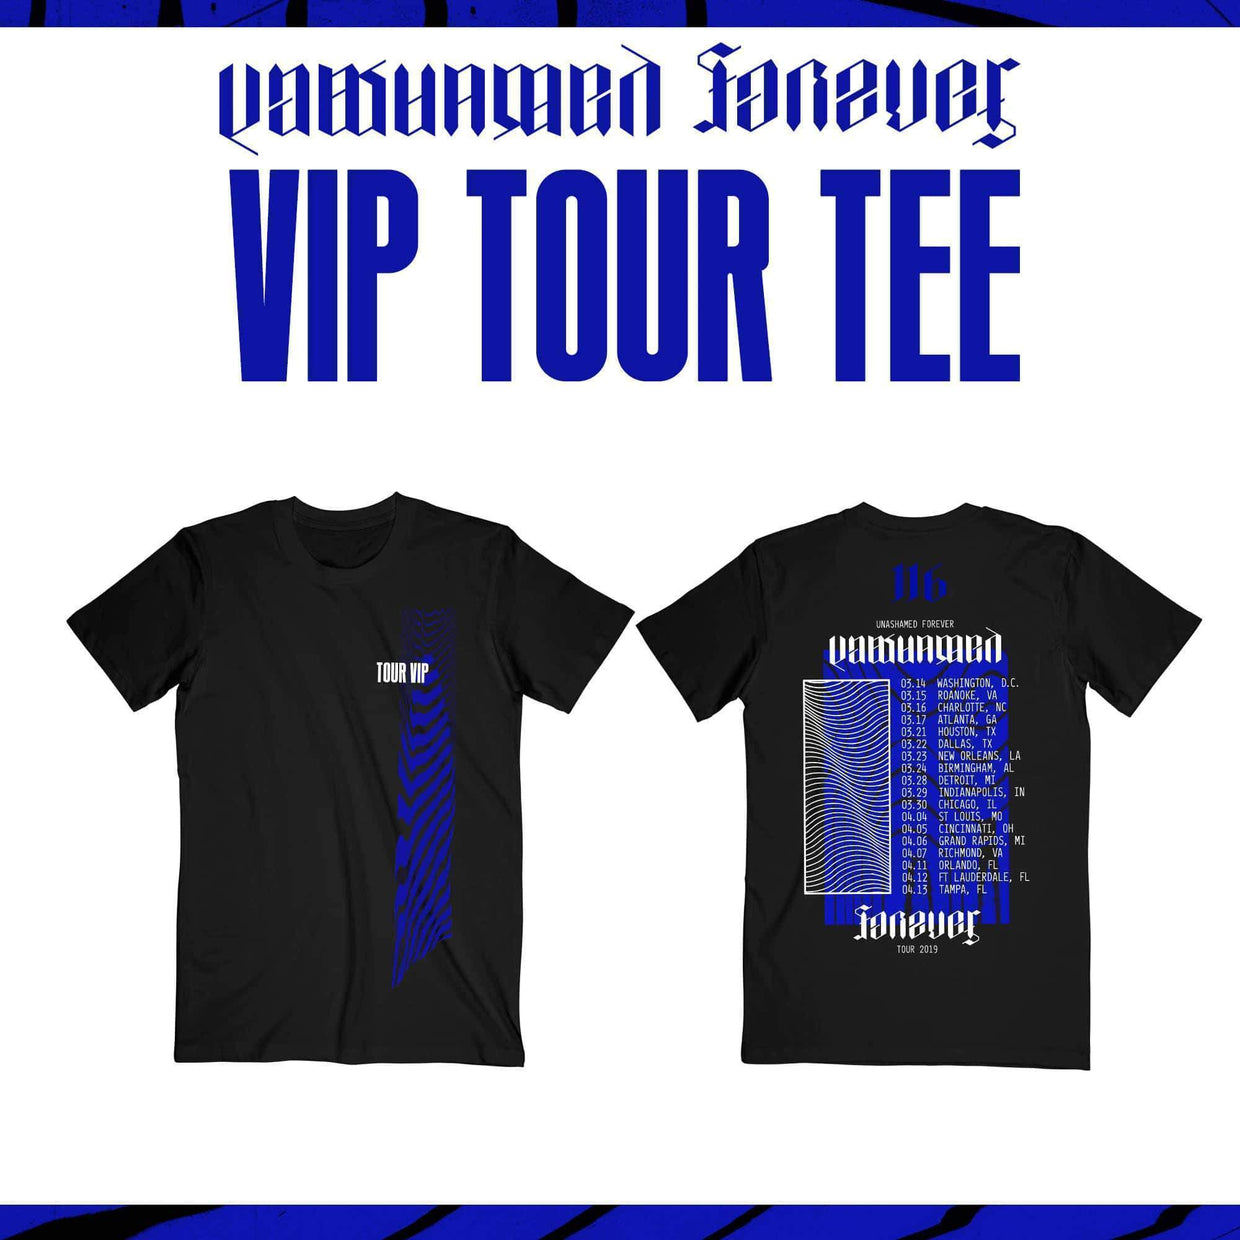 Unashamed Forever Tour - DIAMOND VIP - Detroit, MI - 03/28